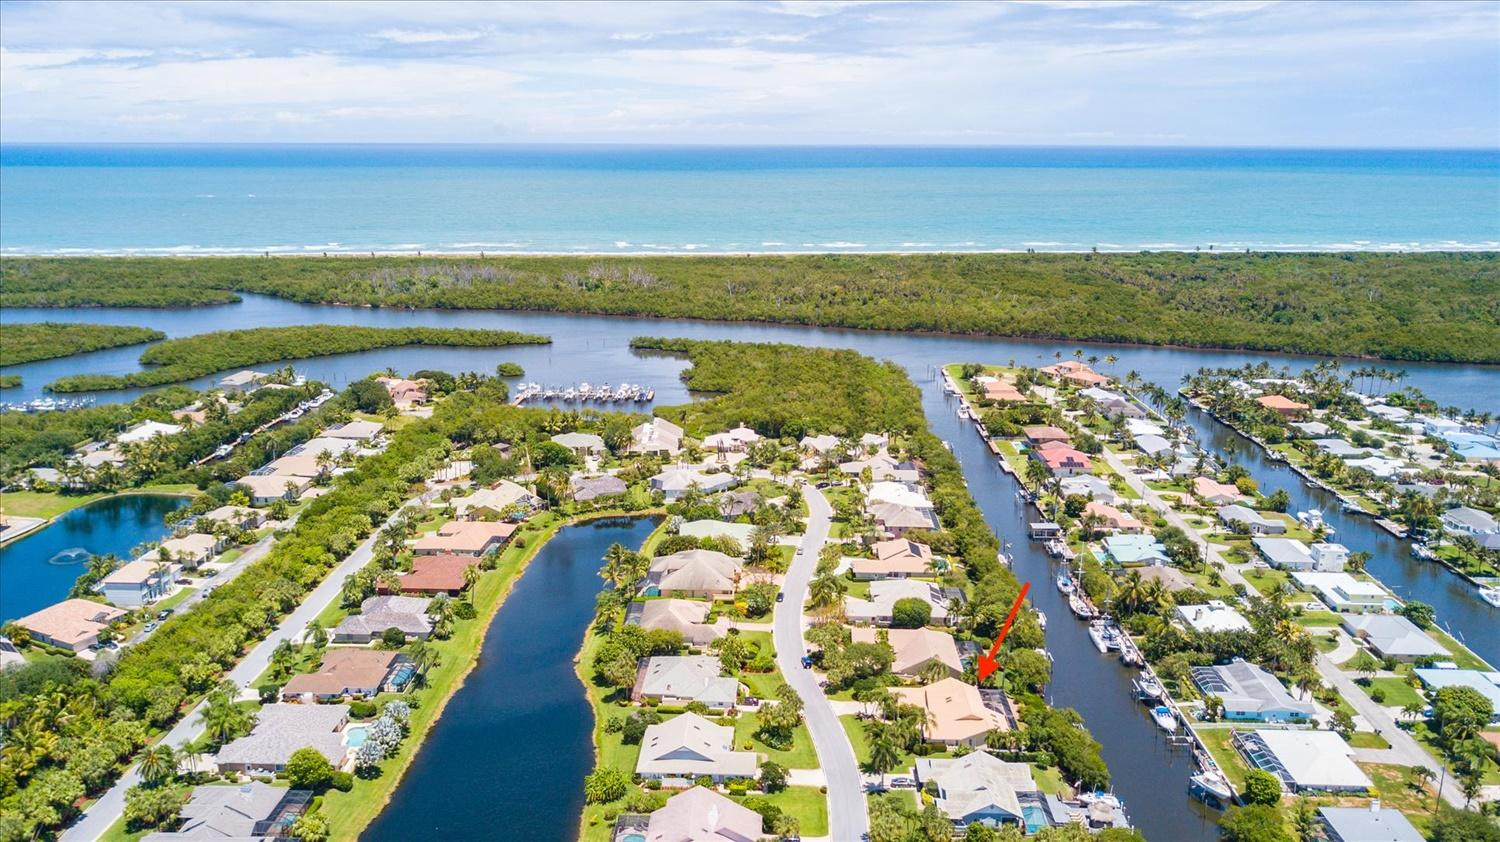 8848 Marina Bay Hobe Sound 33455